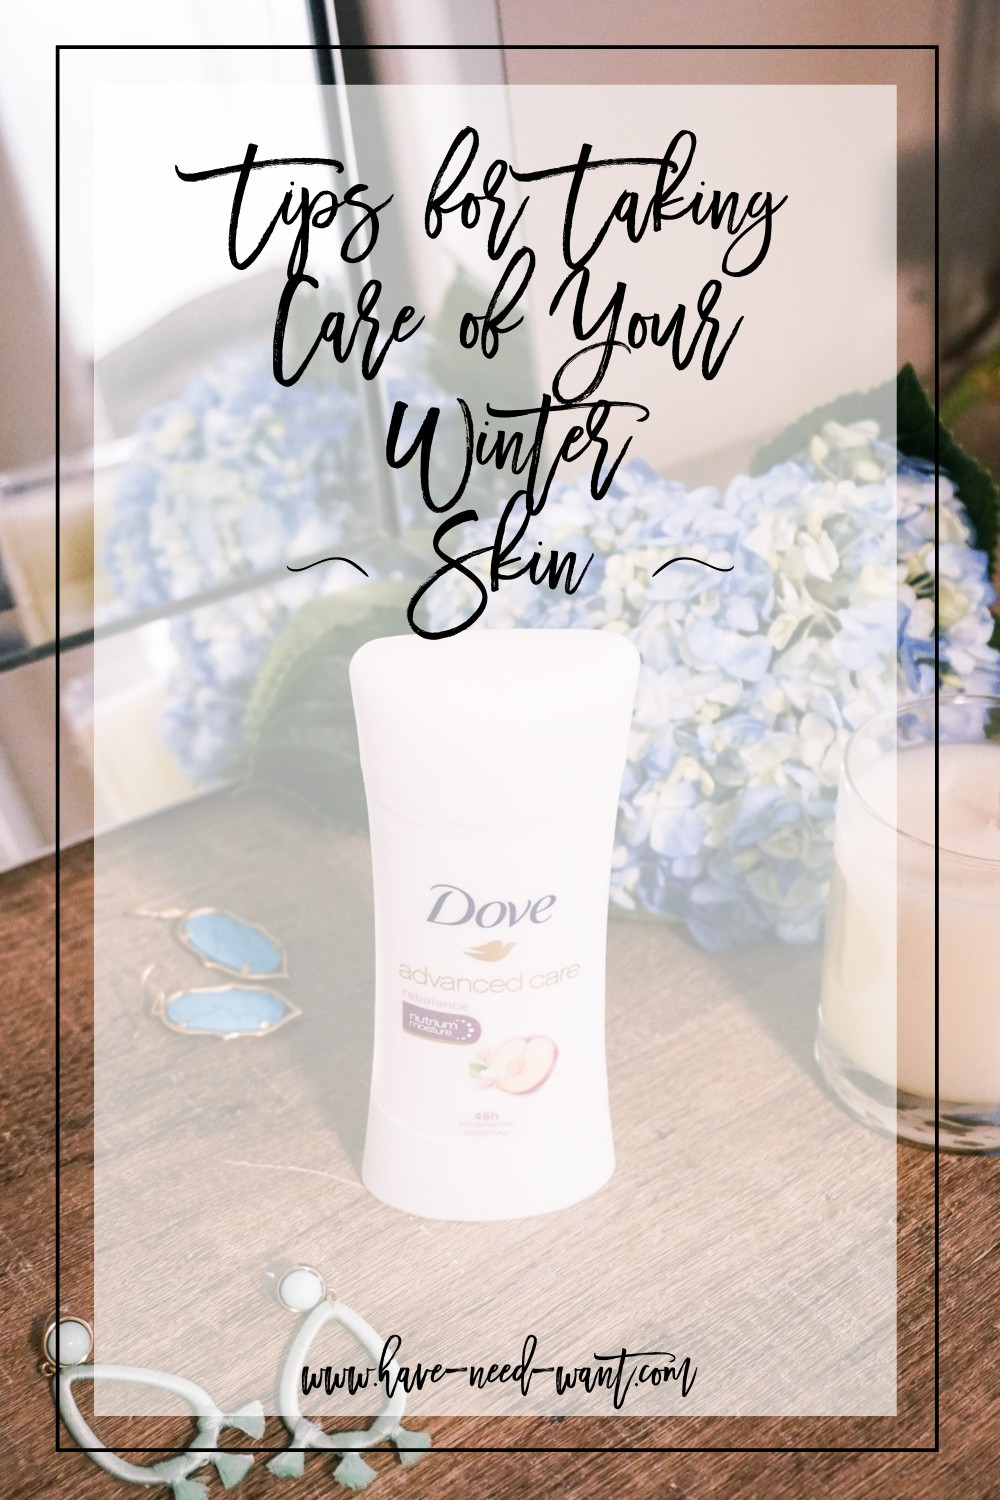 Tips for taking care of your winter skin! Click on the photo to read the post! | Have Need Want #winterskincare #dove